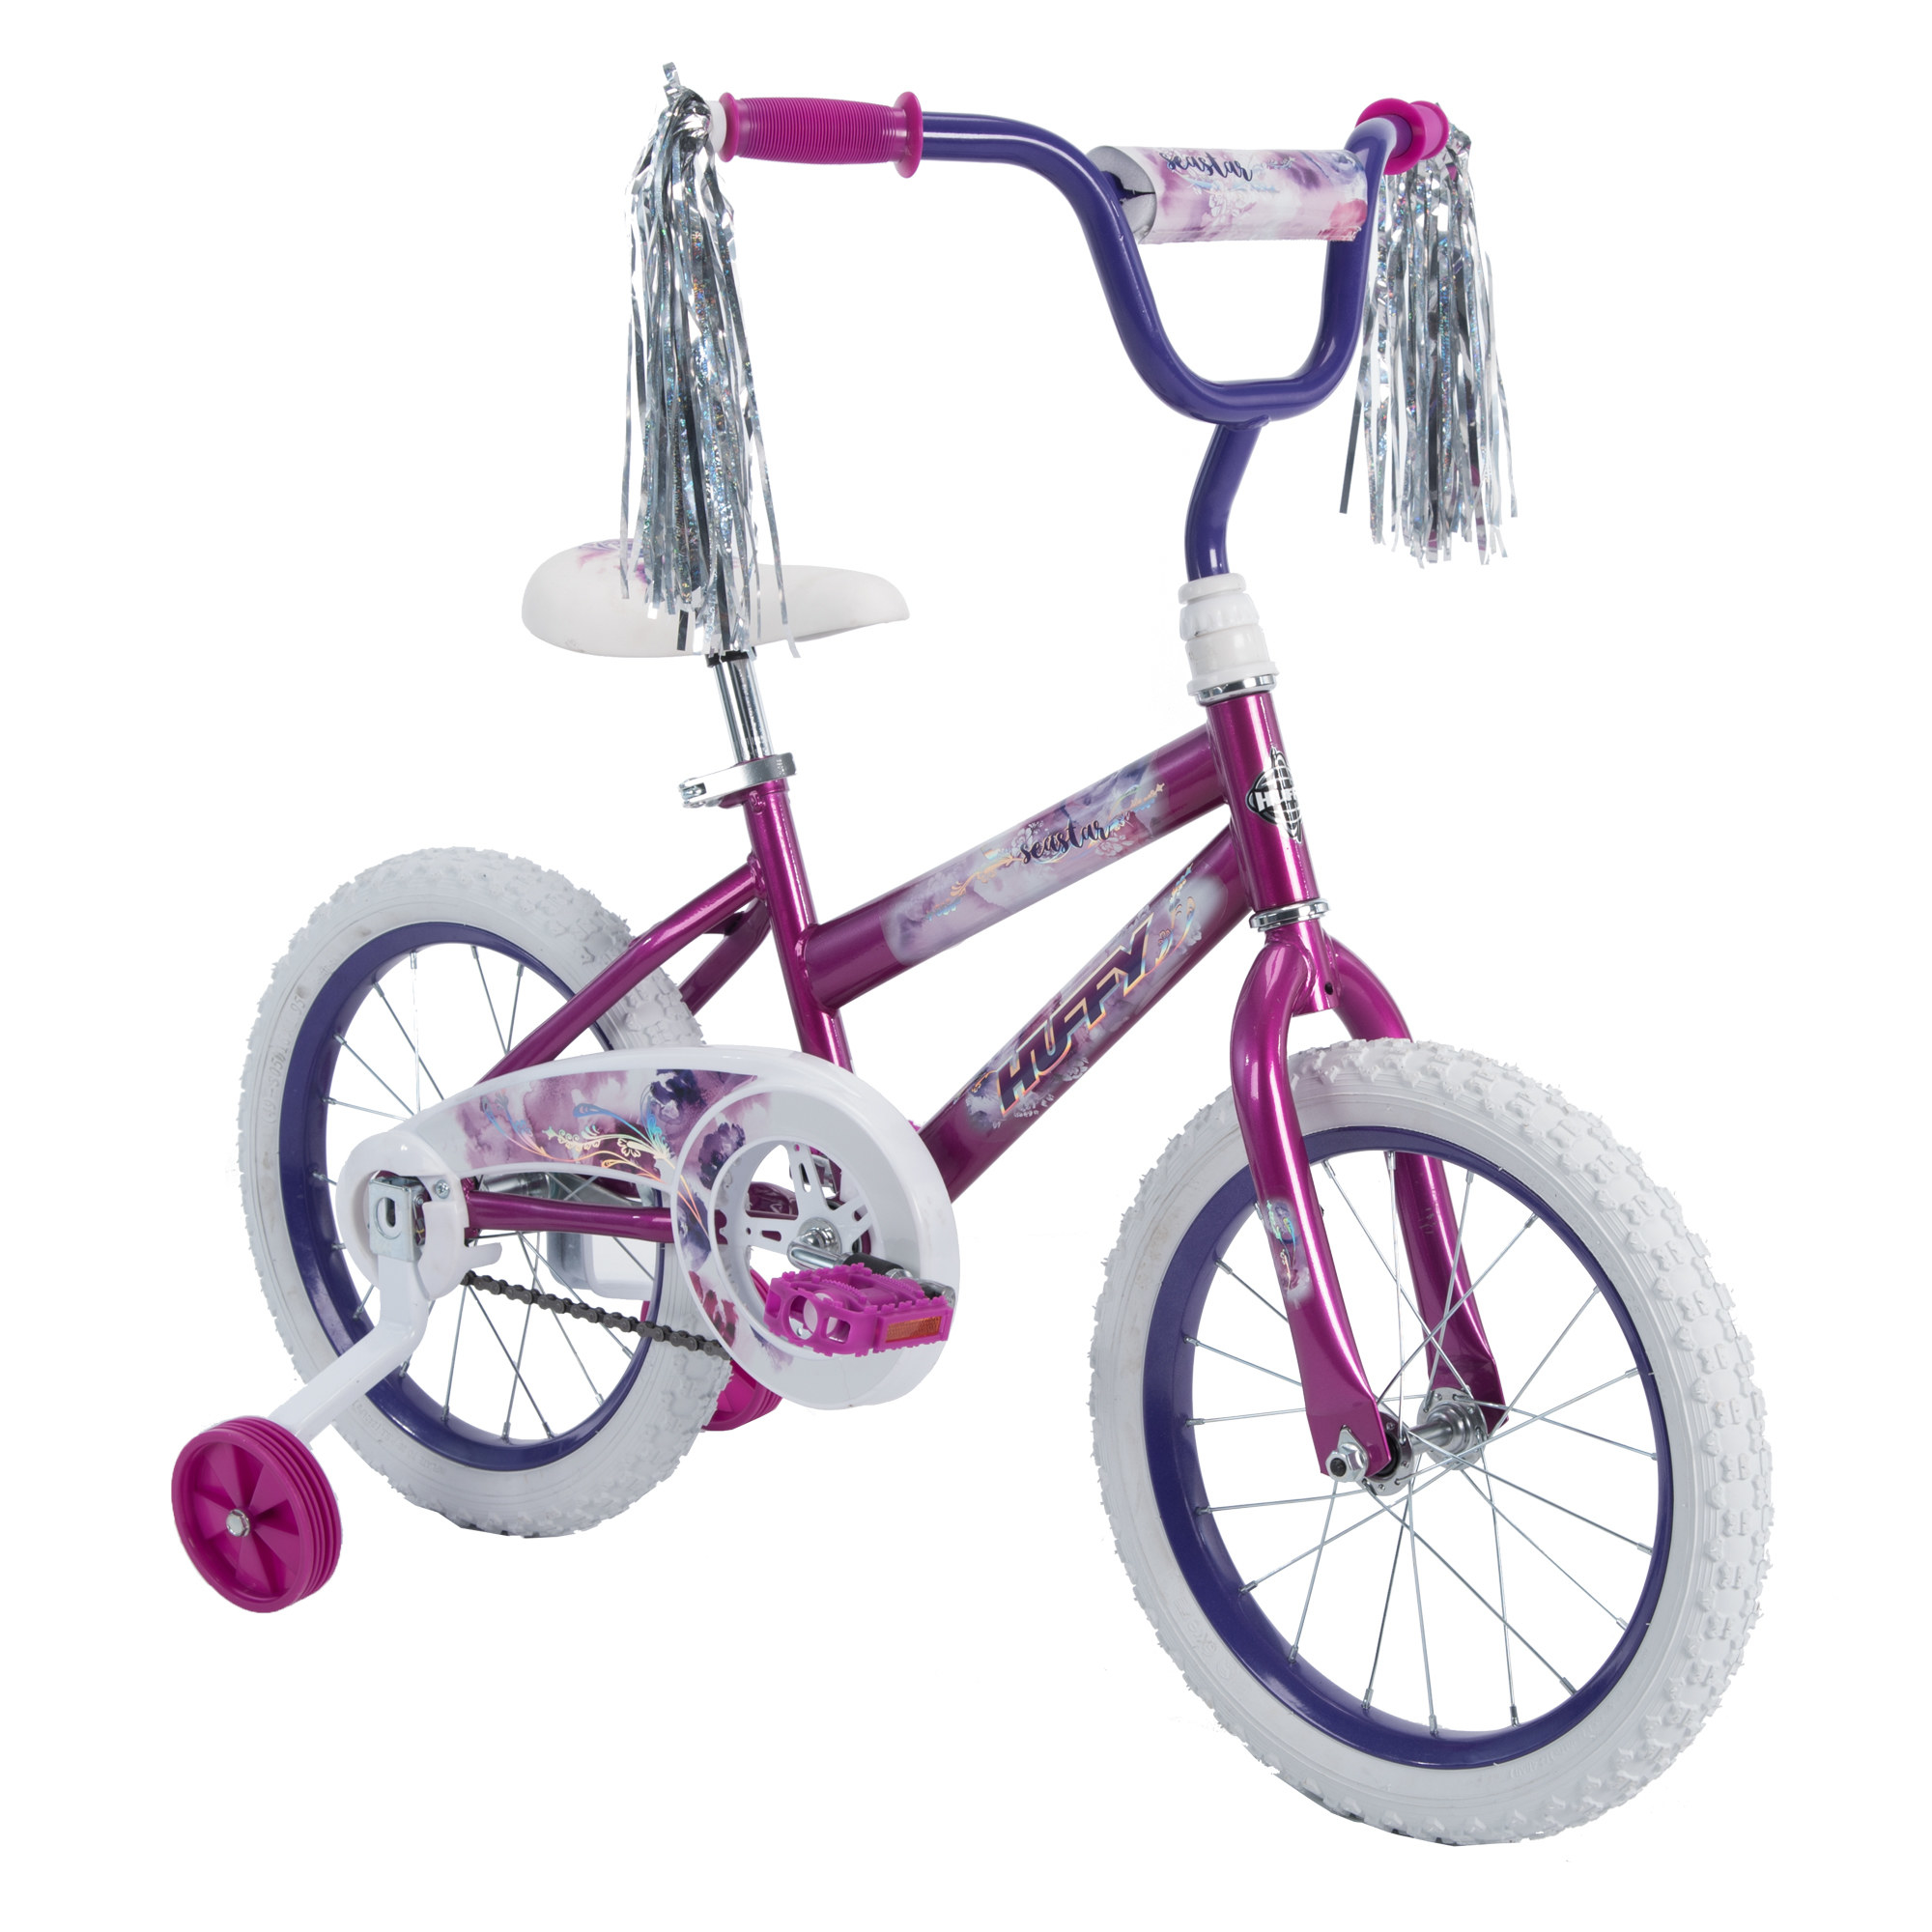 pink and purple bike with training wheels and tassels